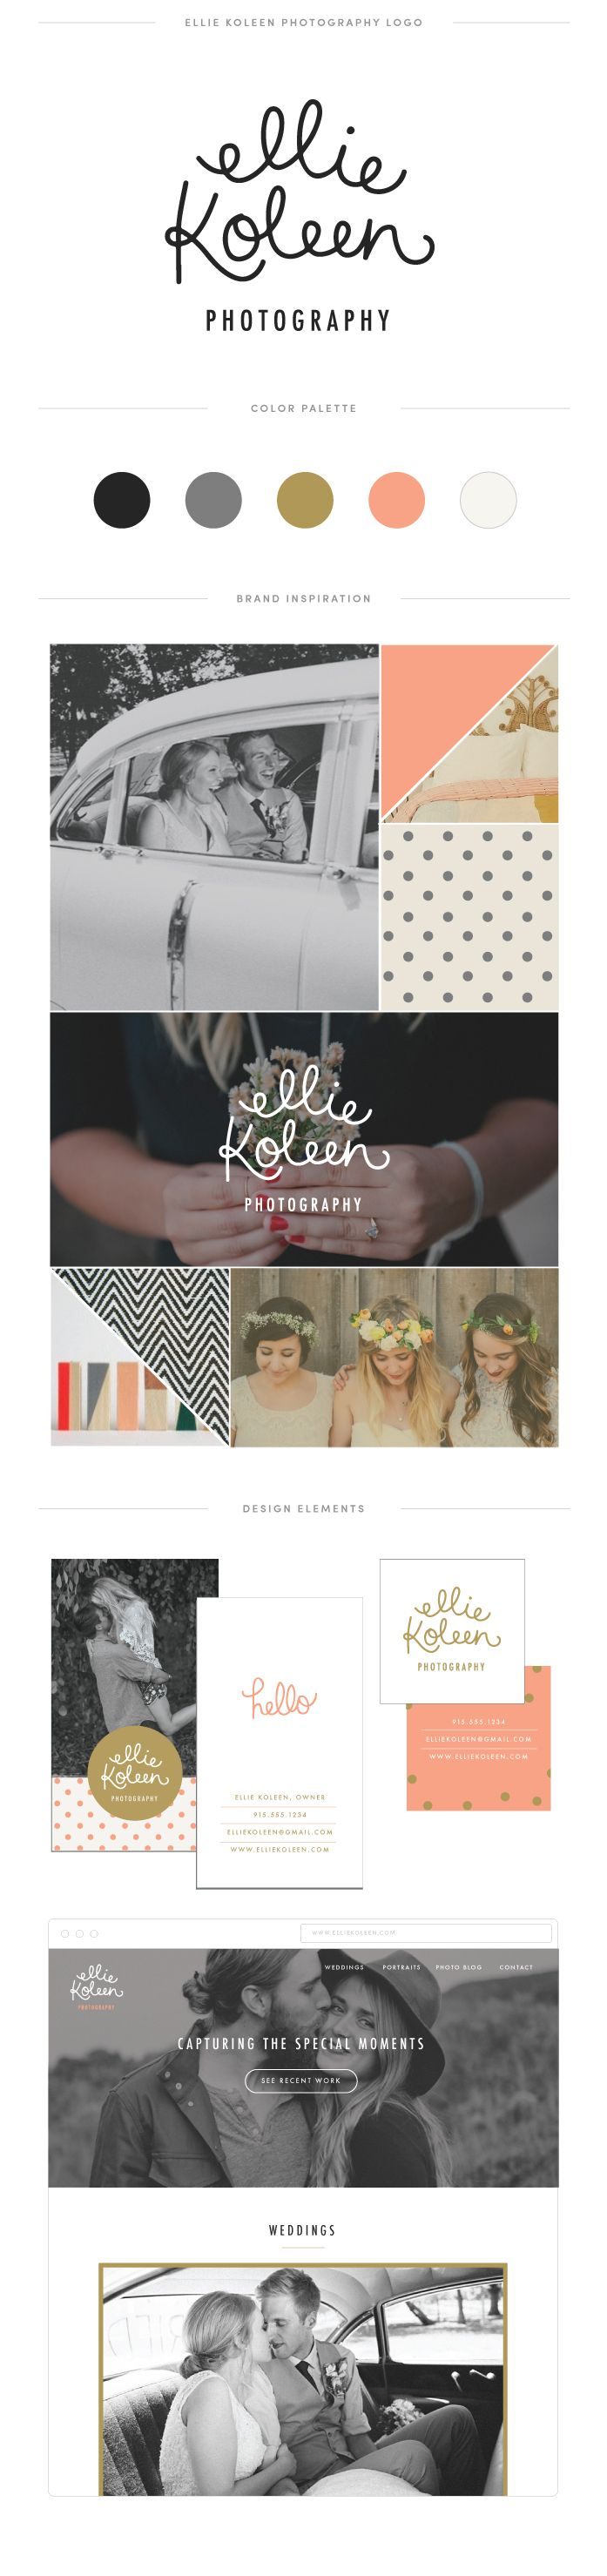 Logo, color palette, inspiration board, and other design ideas for a wedding photographer || June Letters Studio